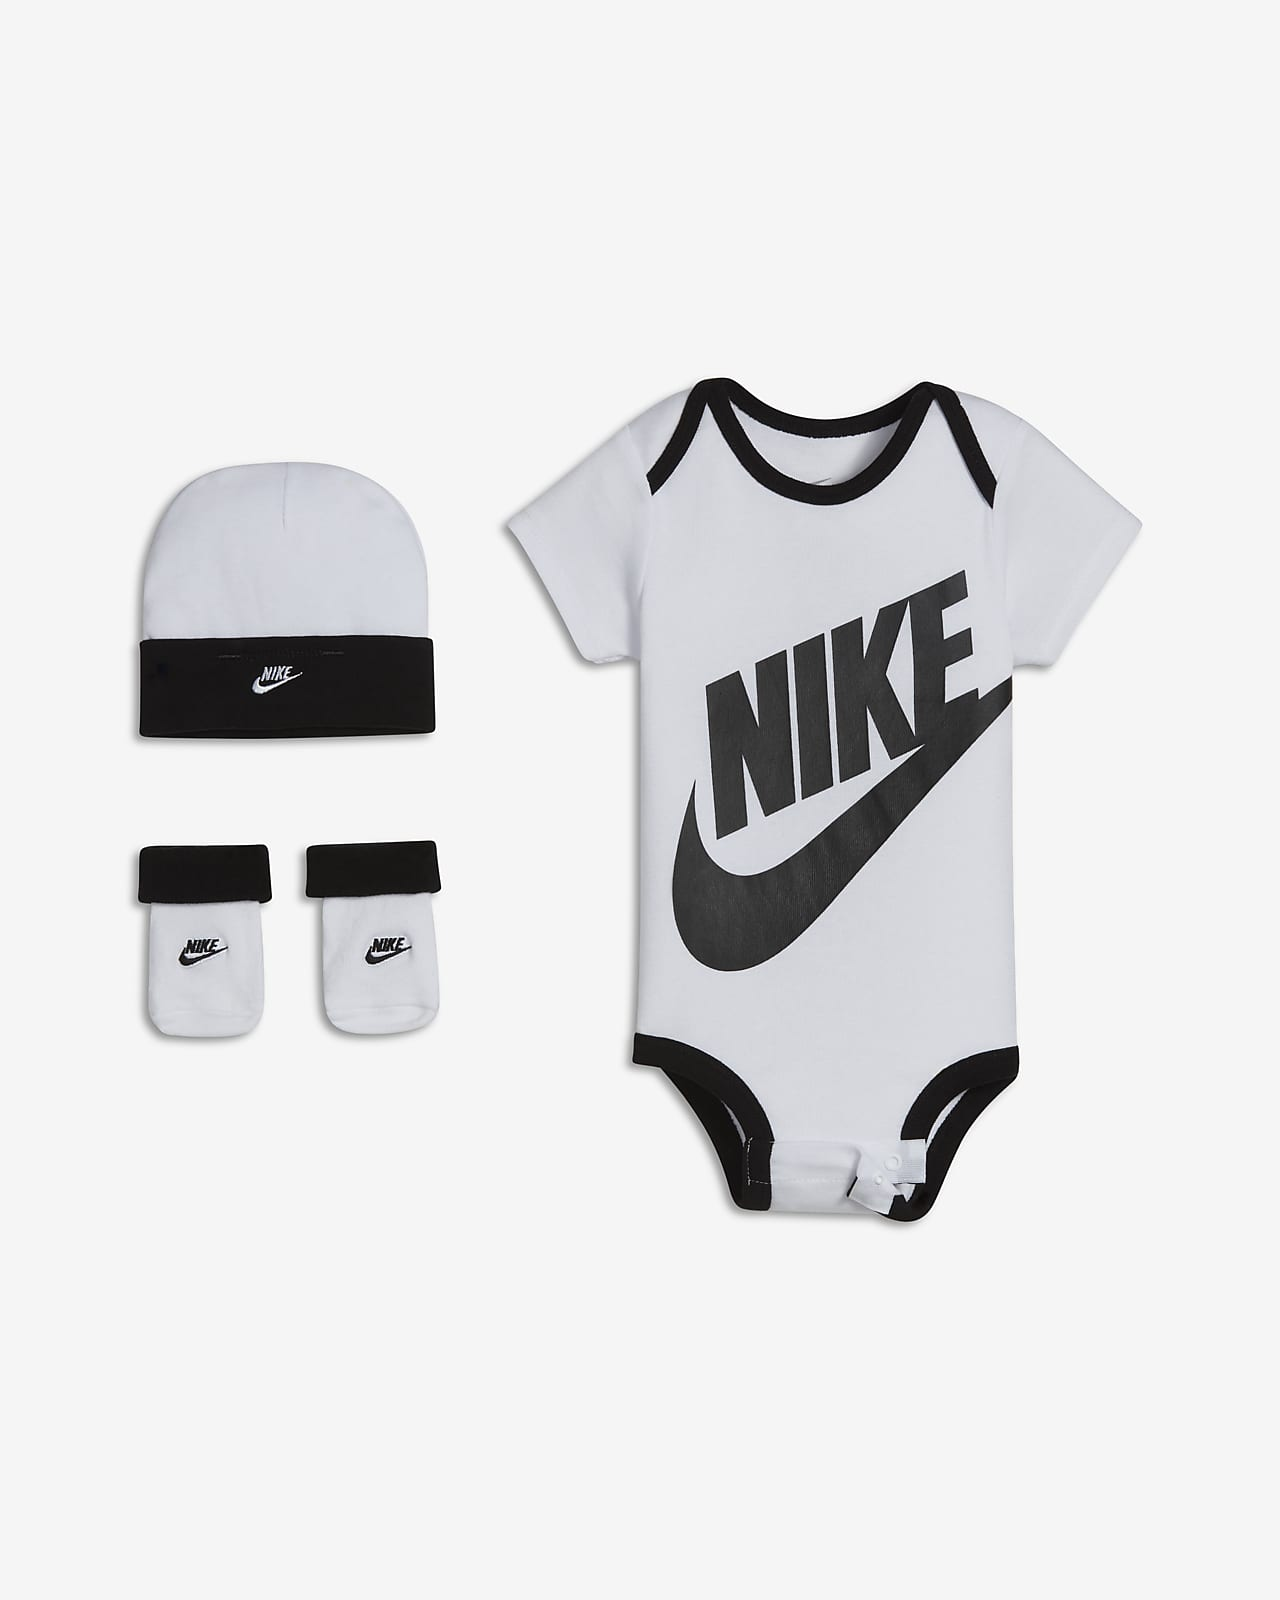 Nike Baby (6-12M) Bodysuit, Hat and Booties Box Set